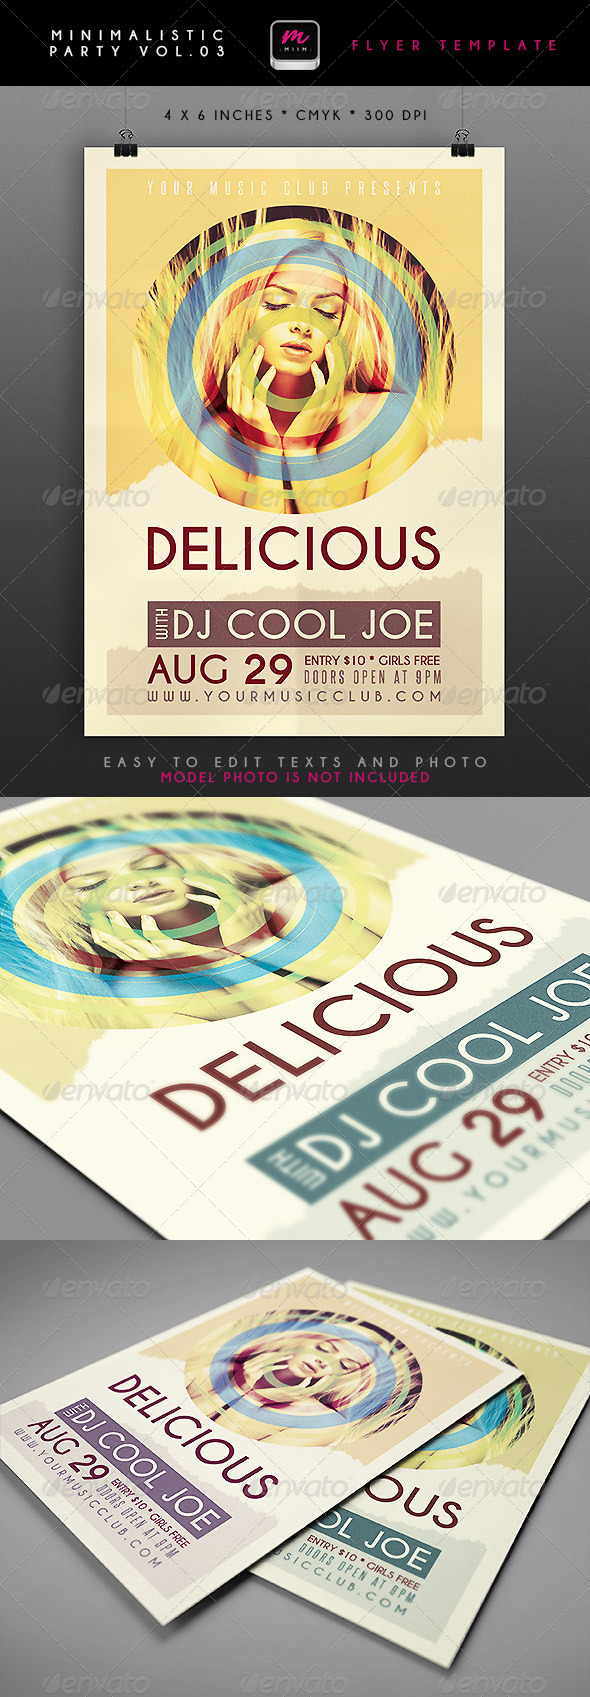 GraphicRiver Minimalistic Party Flyer 3 4751298